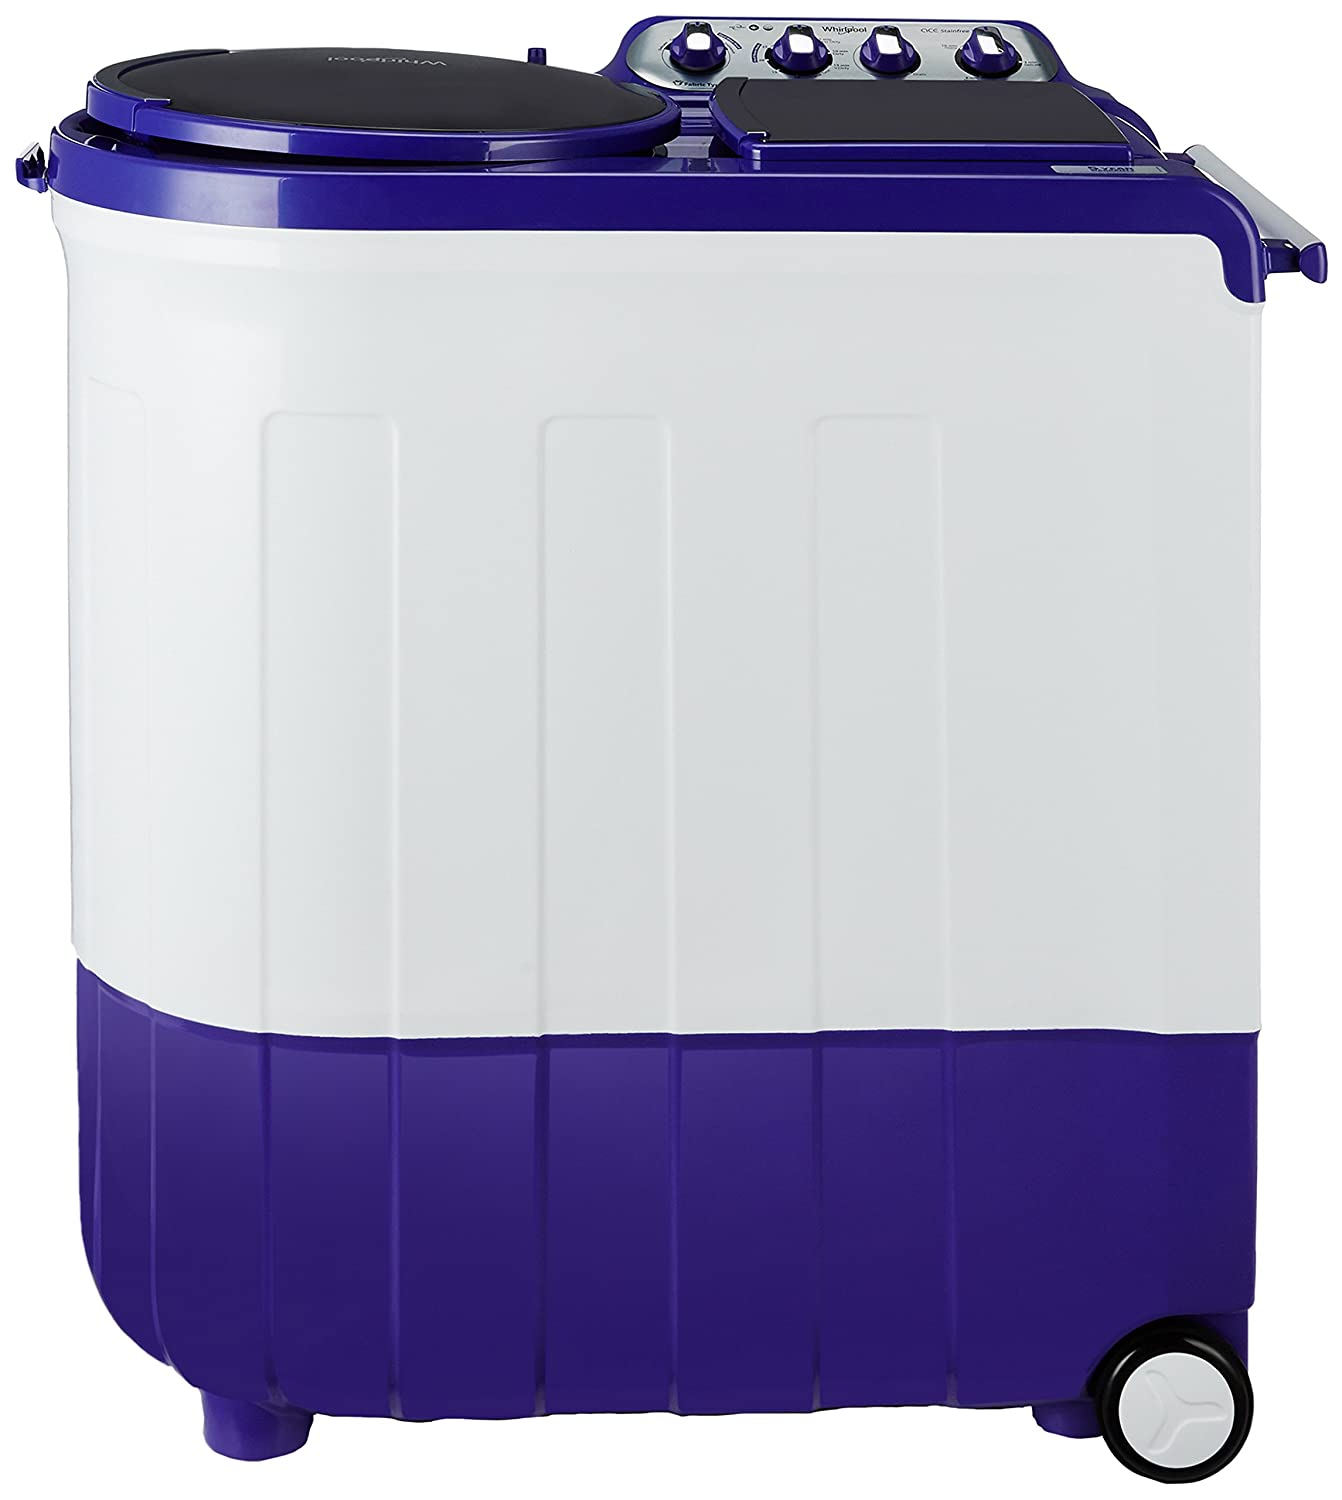 Whirlpool 8Kg Semi Automatic Top Loading Washing Machine Coral Purple ACE 8.0 TURBO DRY Image